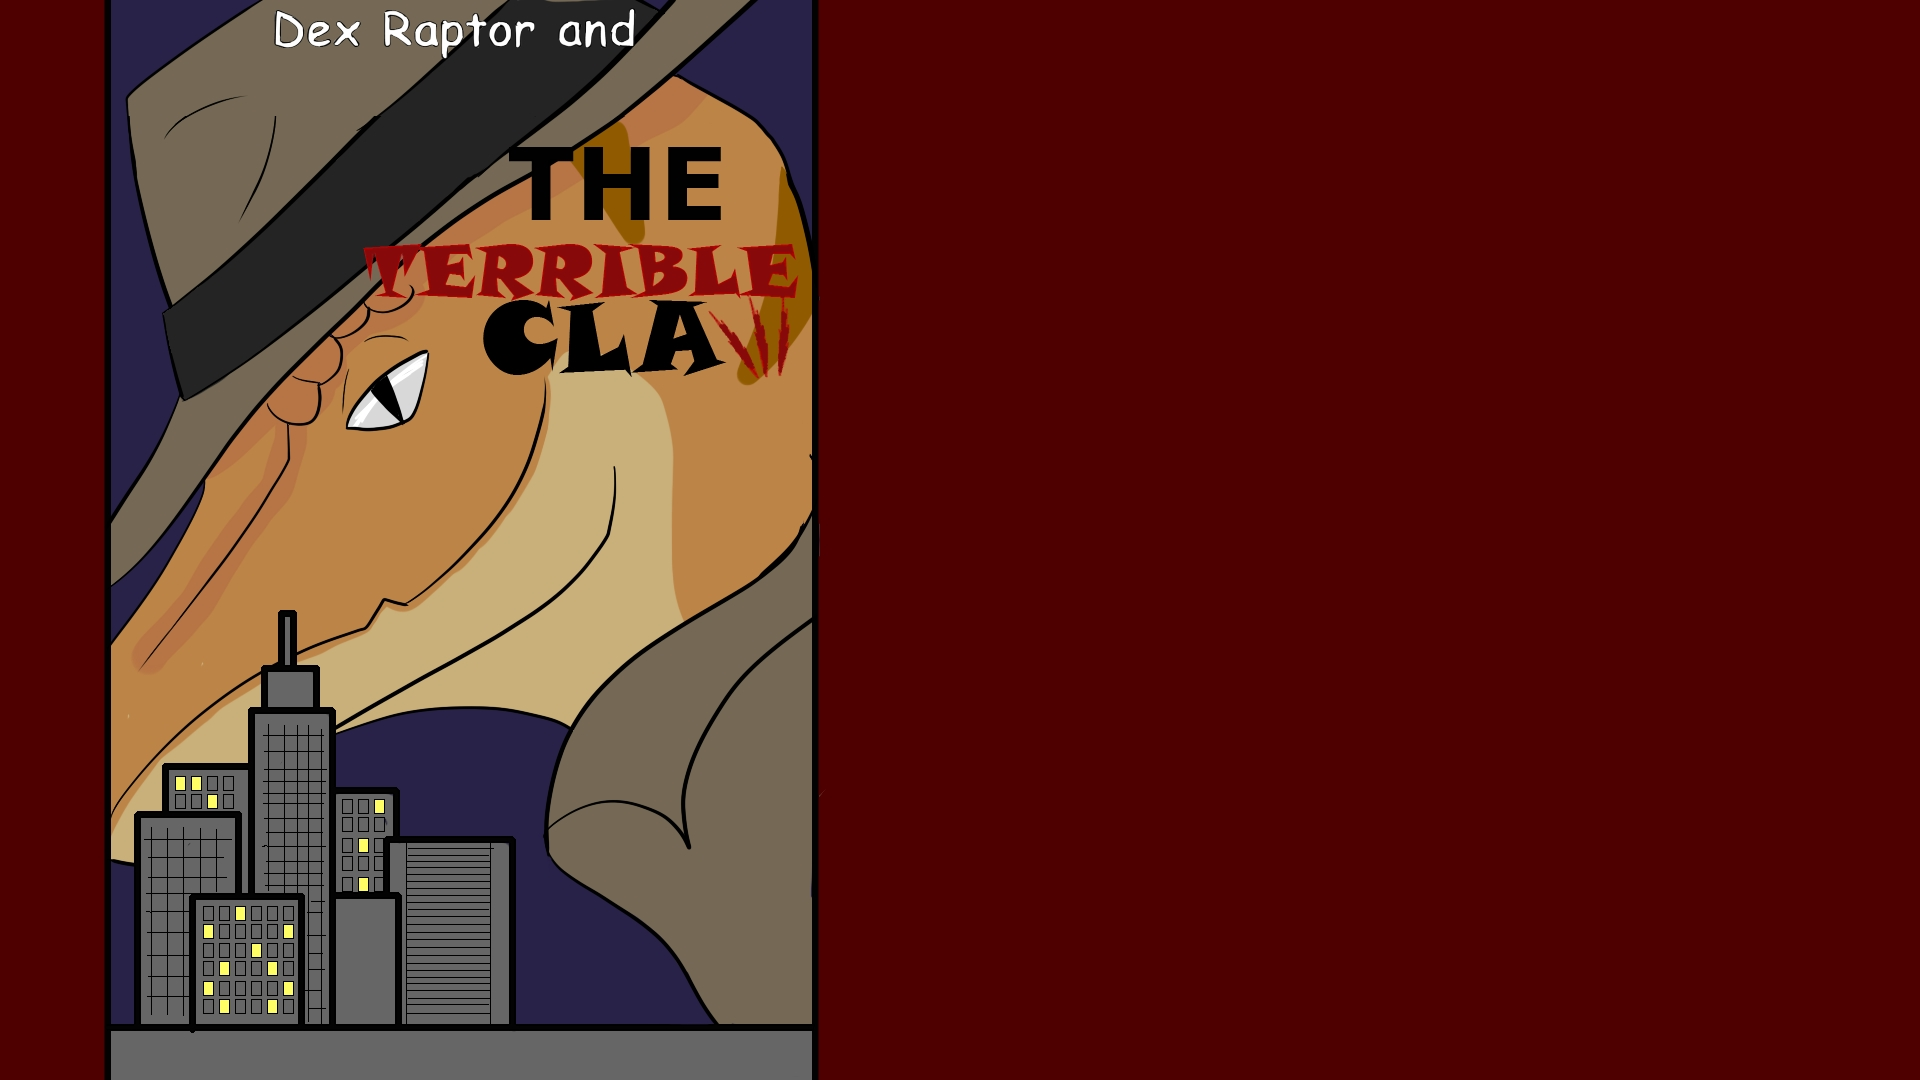 The Terrible Claw